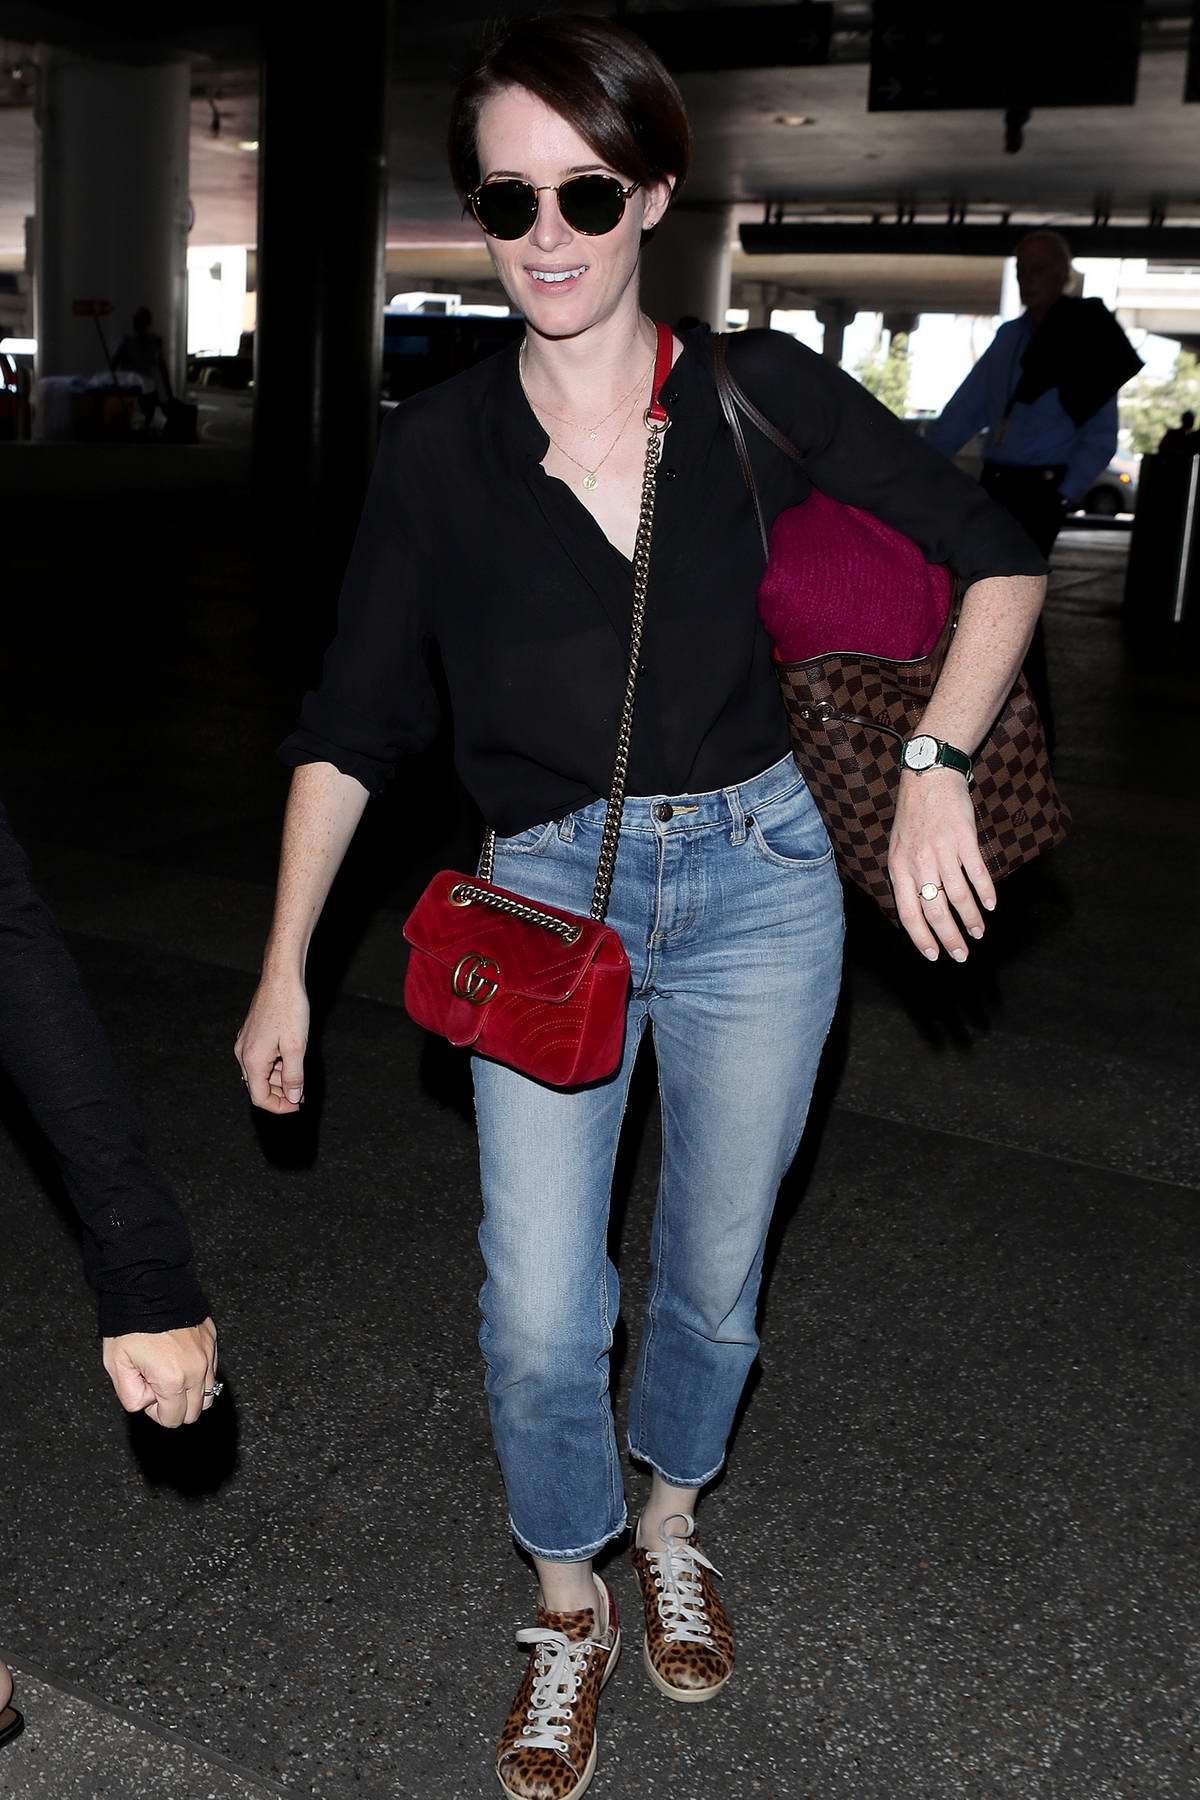 Claire Foy wears a black shirt and jeans with her Gucci purse as she arrives at LAX in Los Angeles